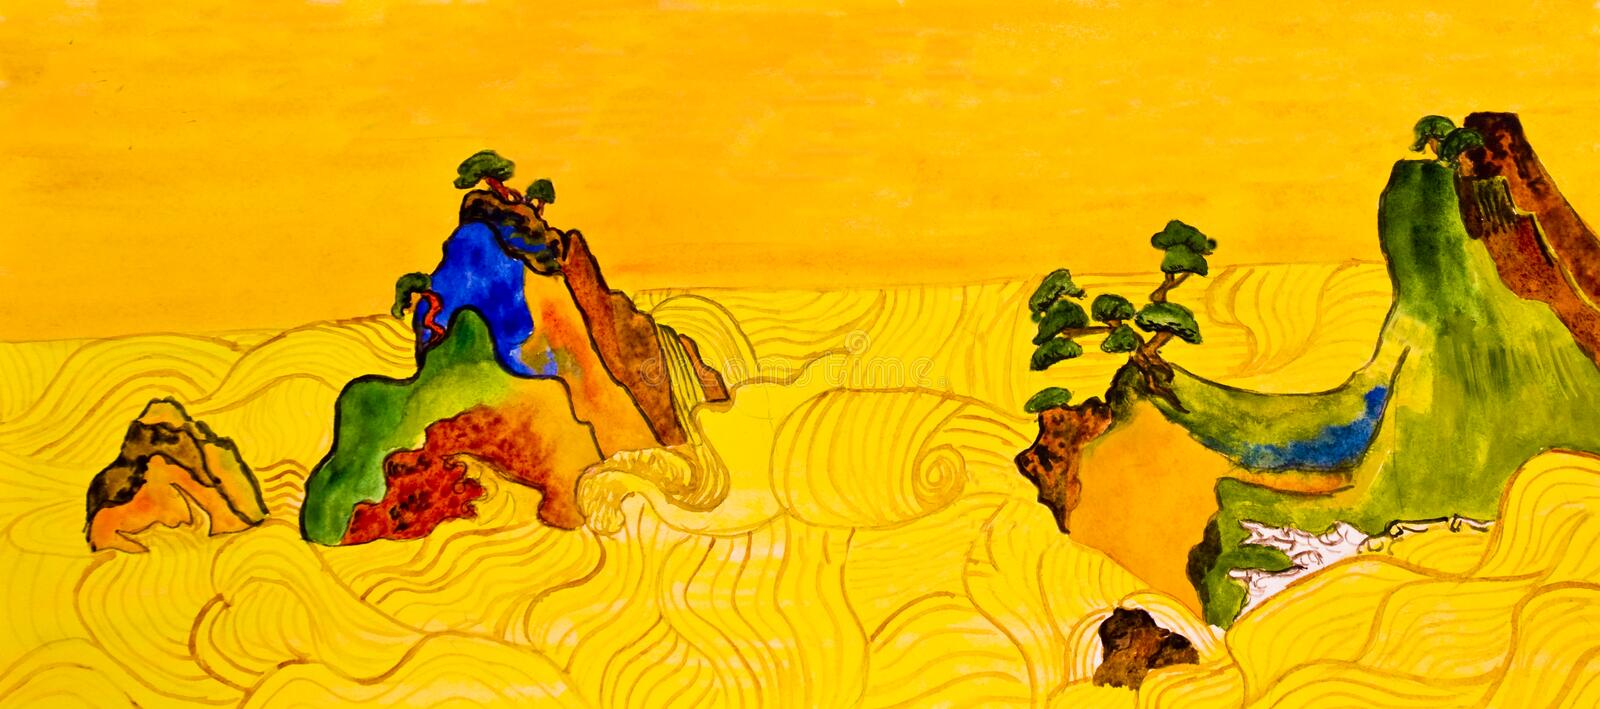 Hand Painted Picture In Traditions Of Japanese Art Royalty Free Stock Images